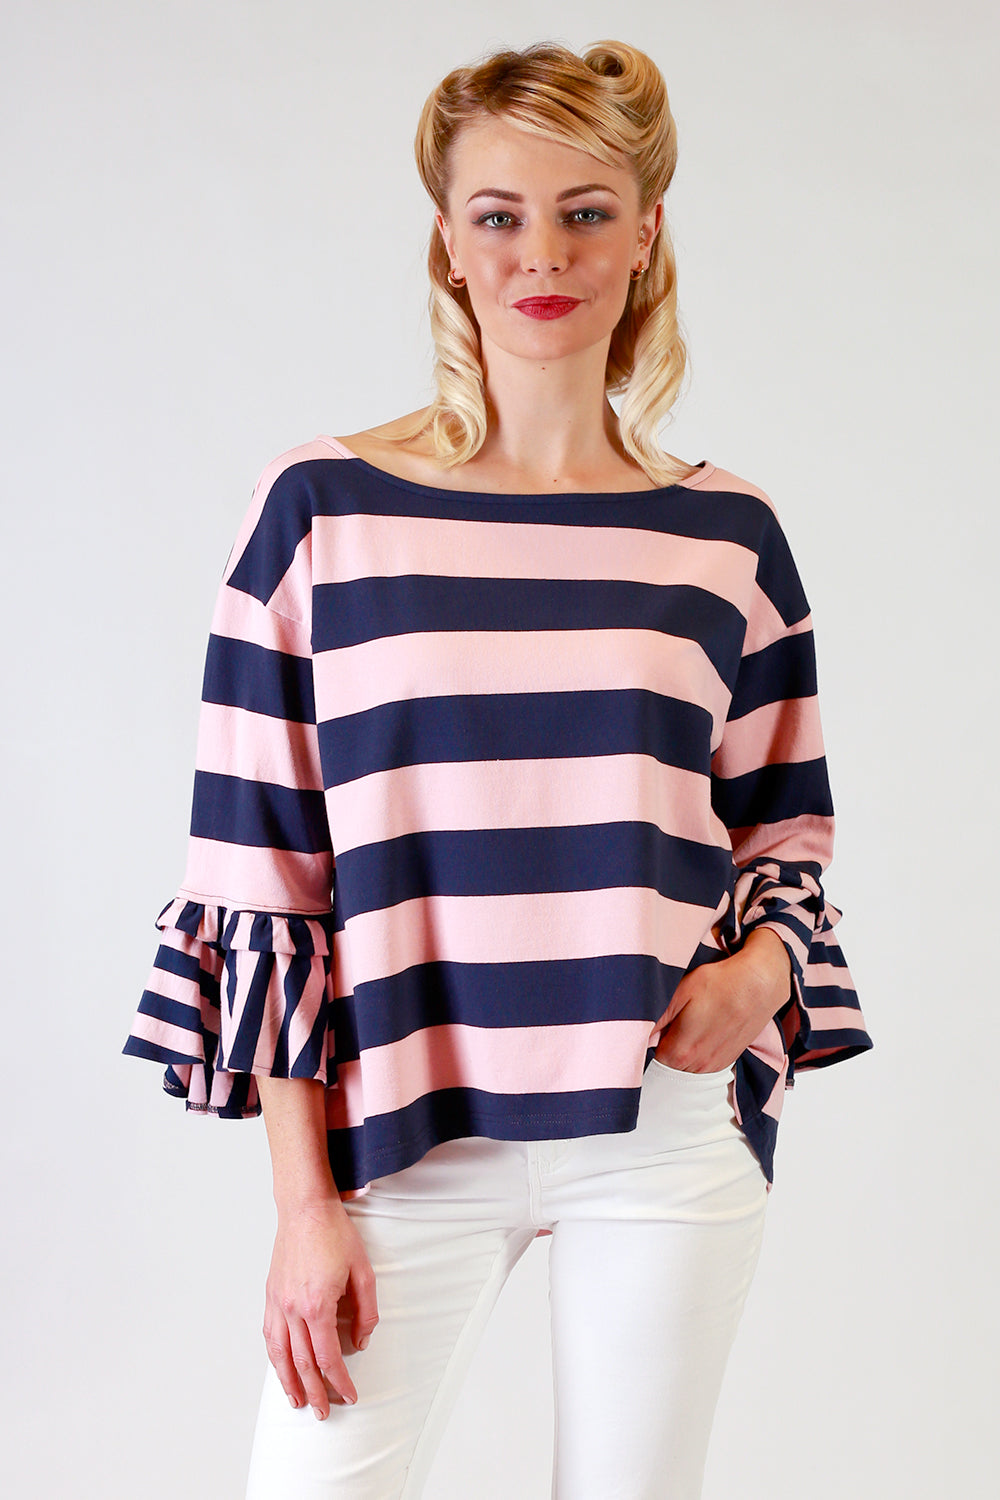 Round the Corner Top | Frill Sleeve Top NZ | Designer Fashion NZ | Tops NZ